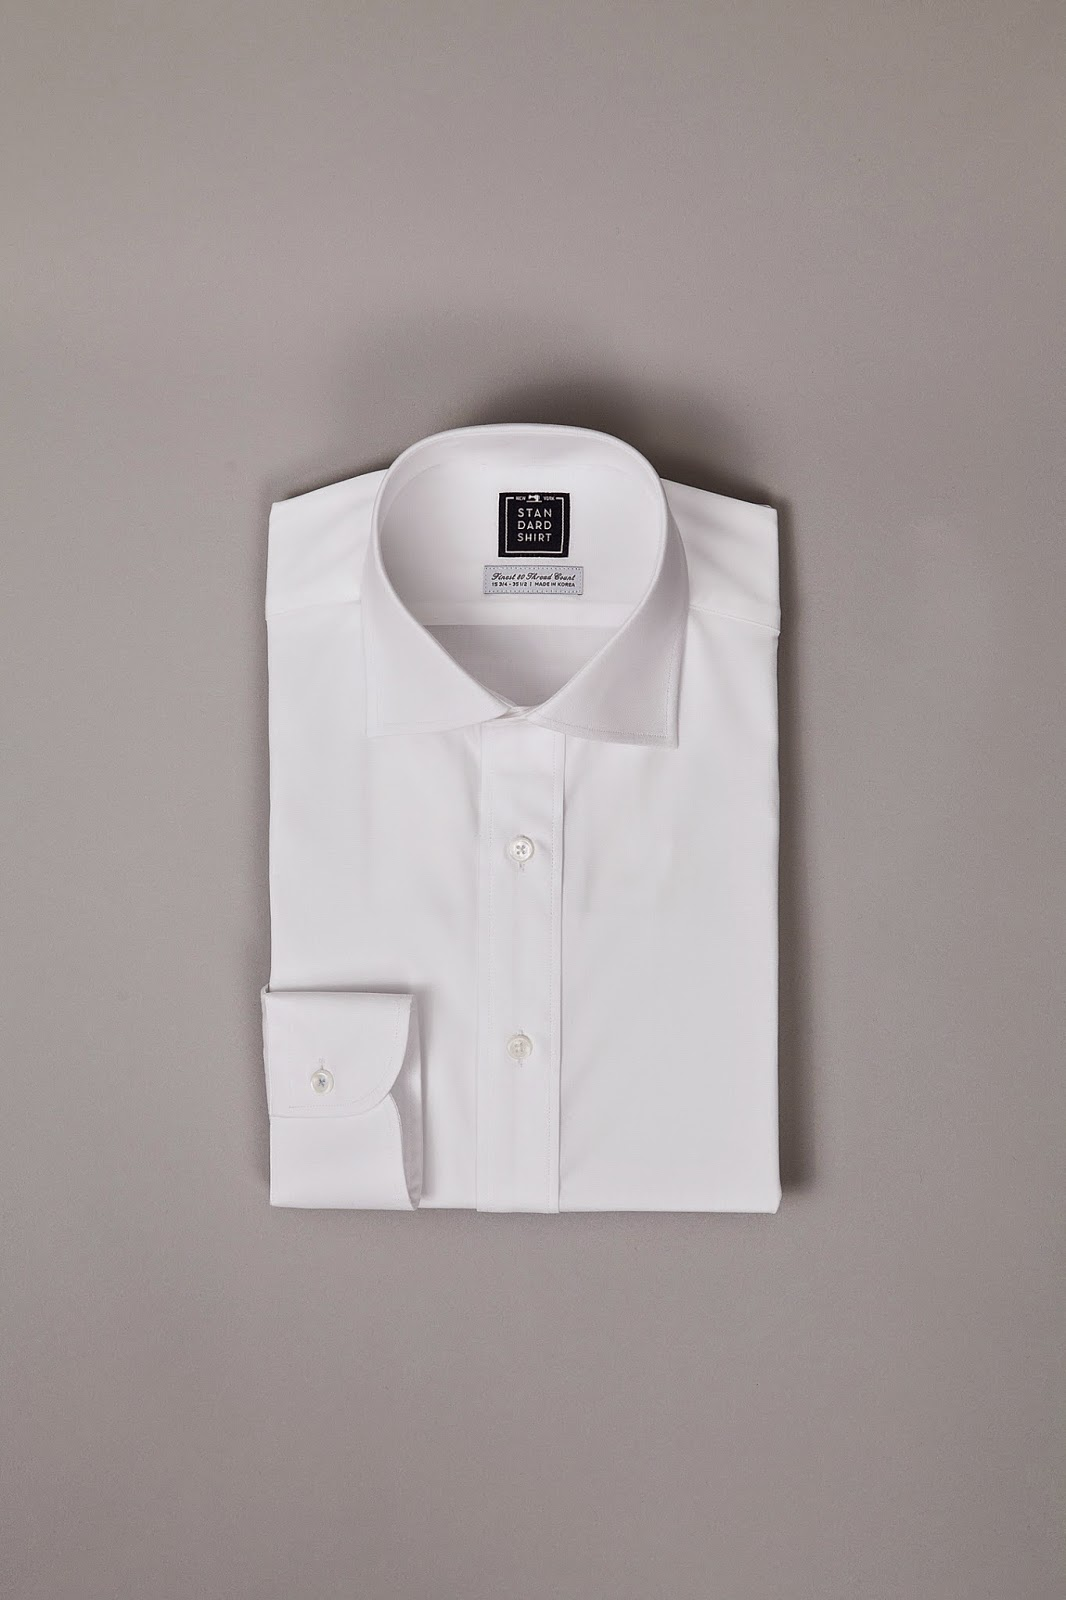 Standard Shirt, dress shirt start up, men's shirts for work